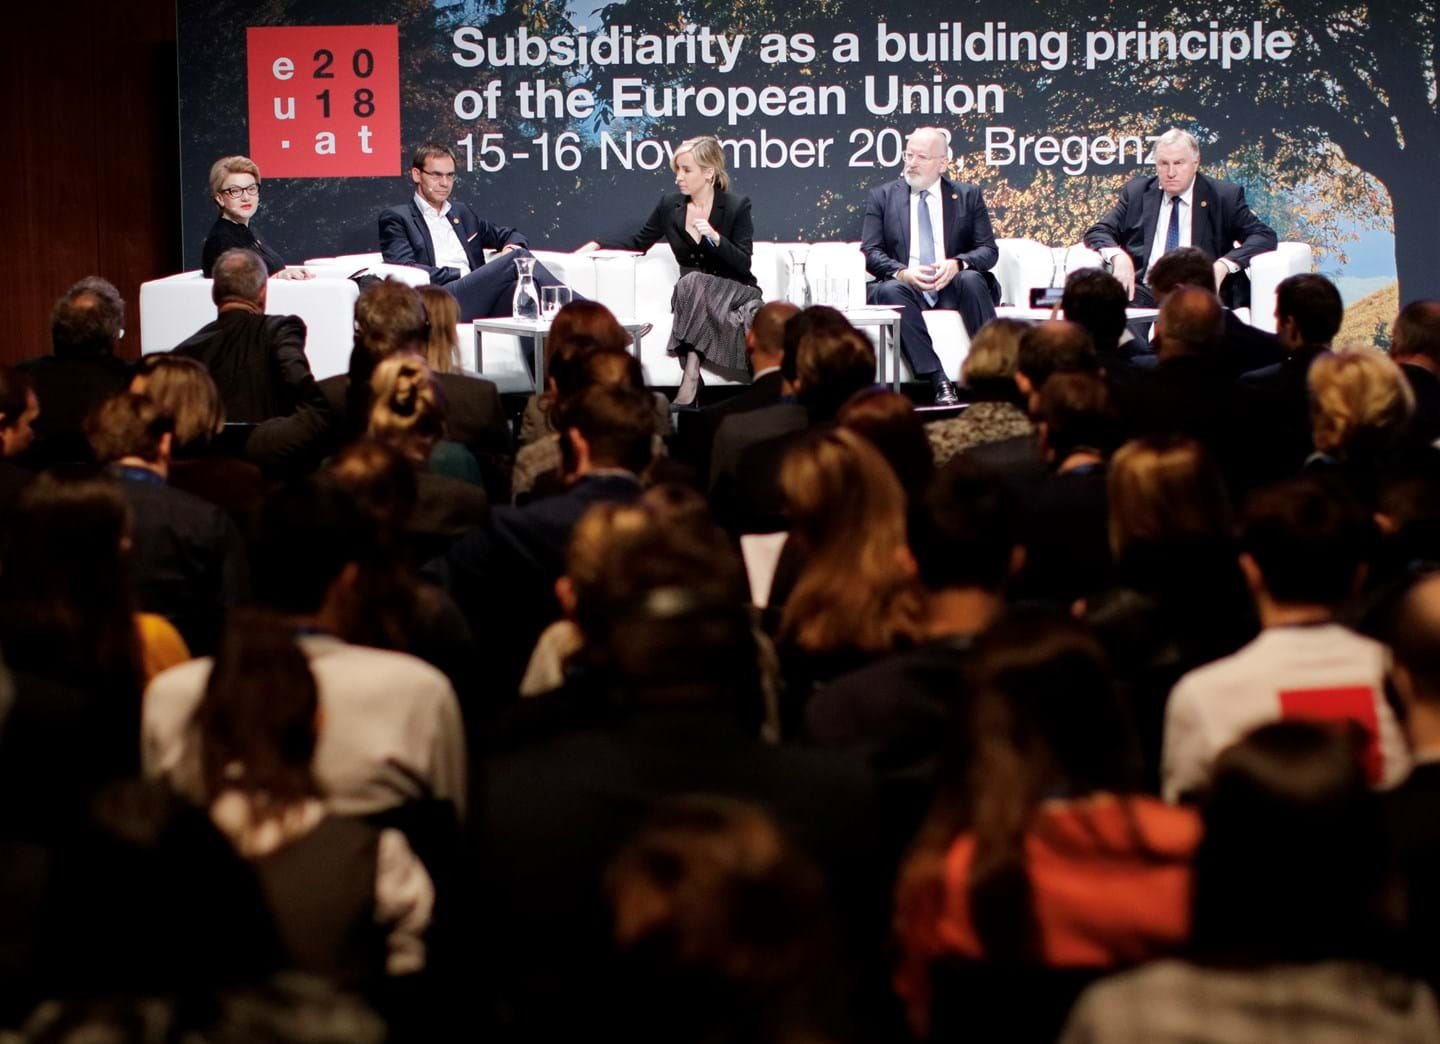 EU Subsidiarity Conference